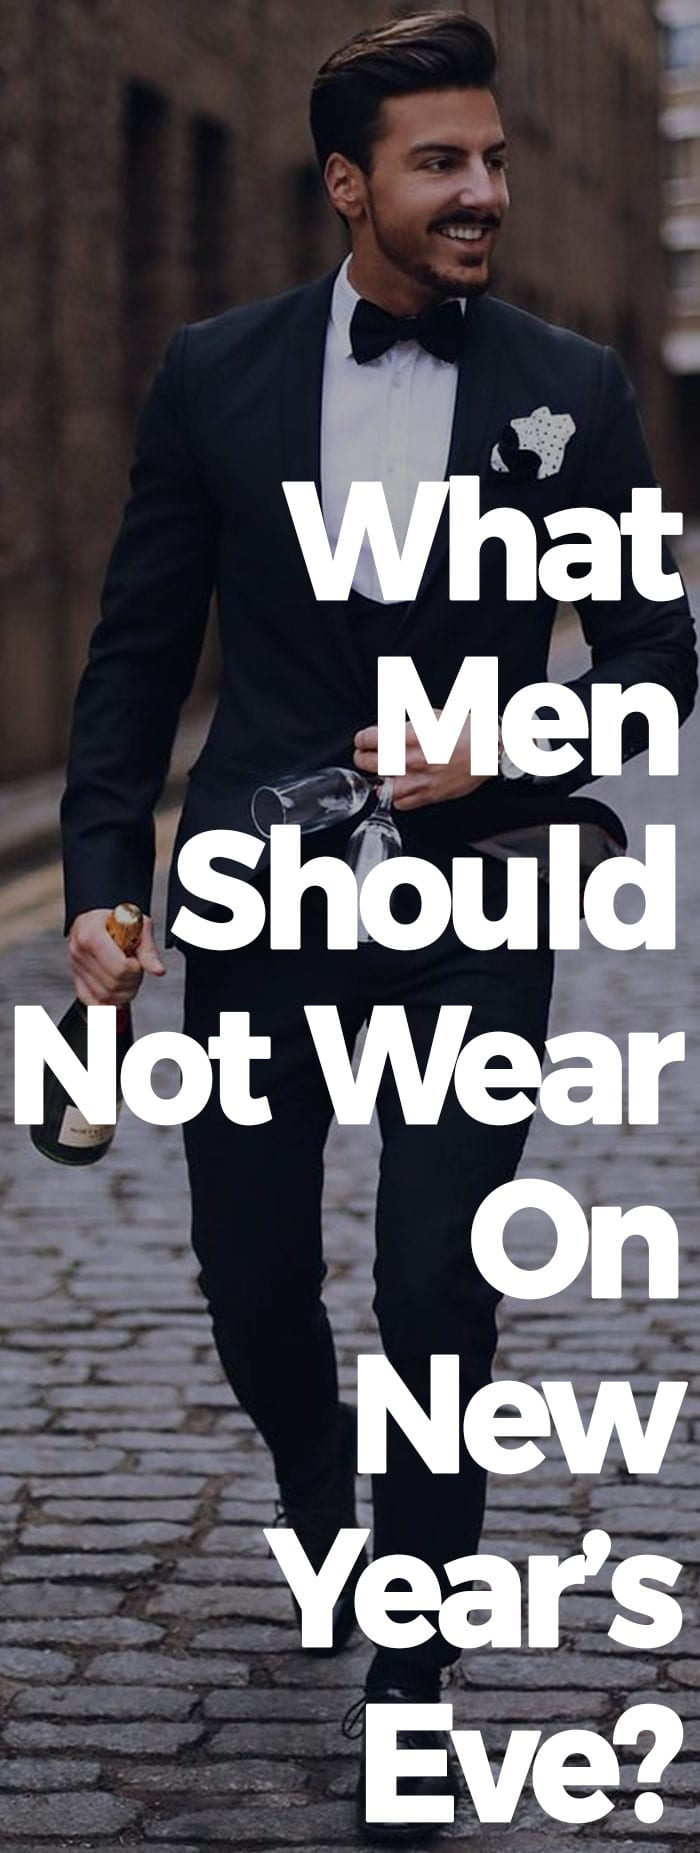 What Men Should Not Wear On New Years Eve.